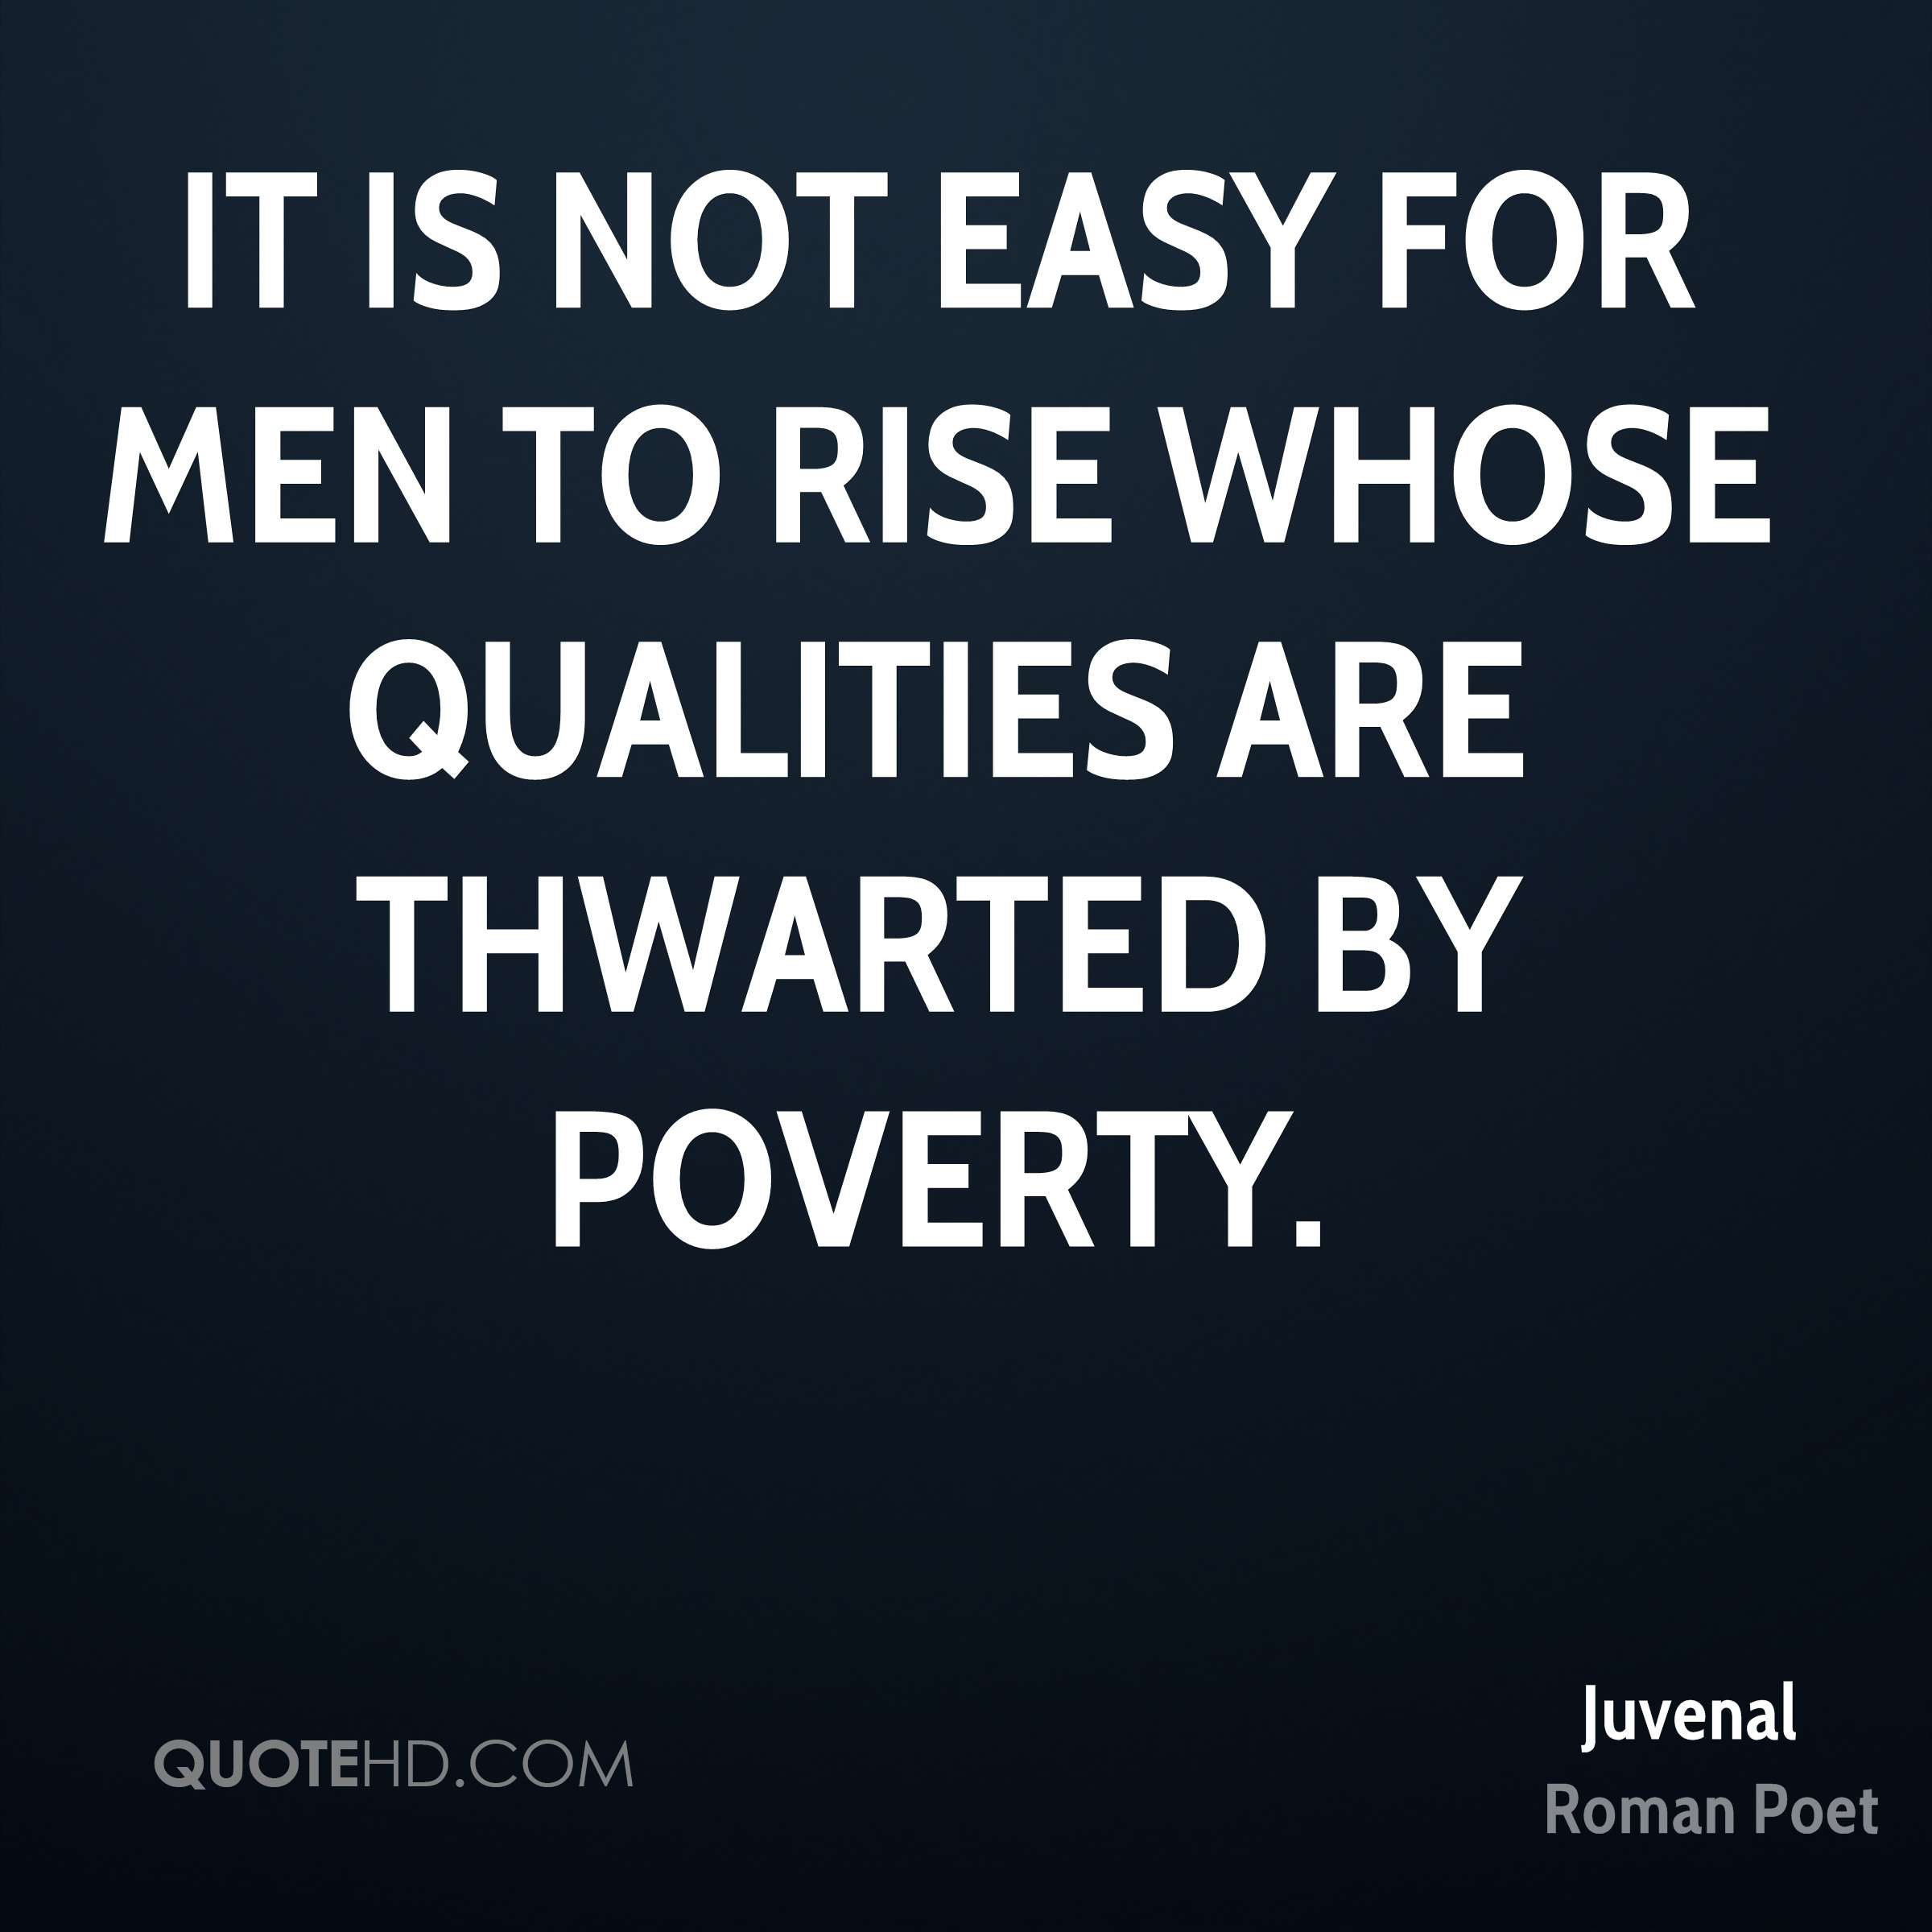 It is not easy for men to rise whose qualities are thwarted by poverty.